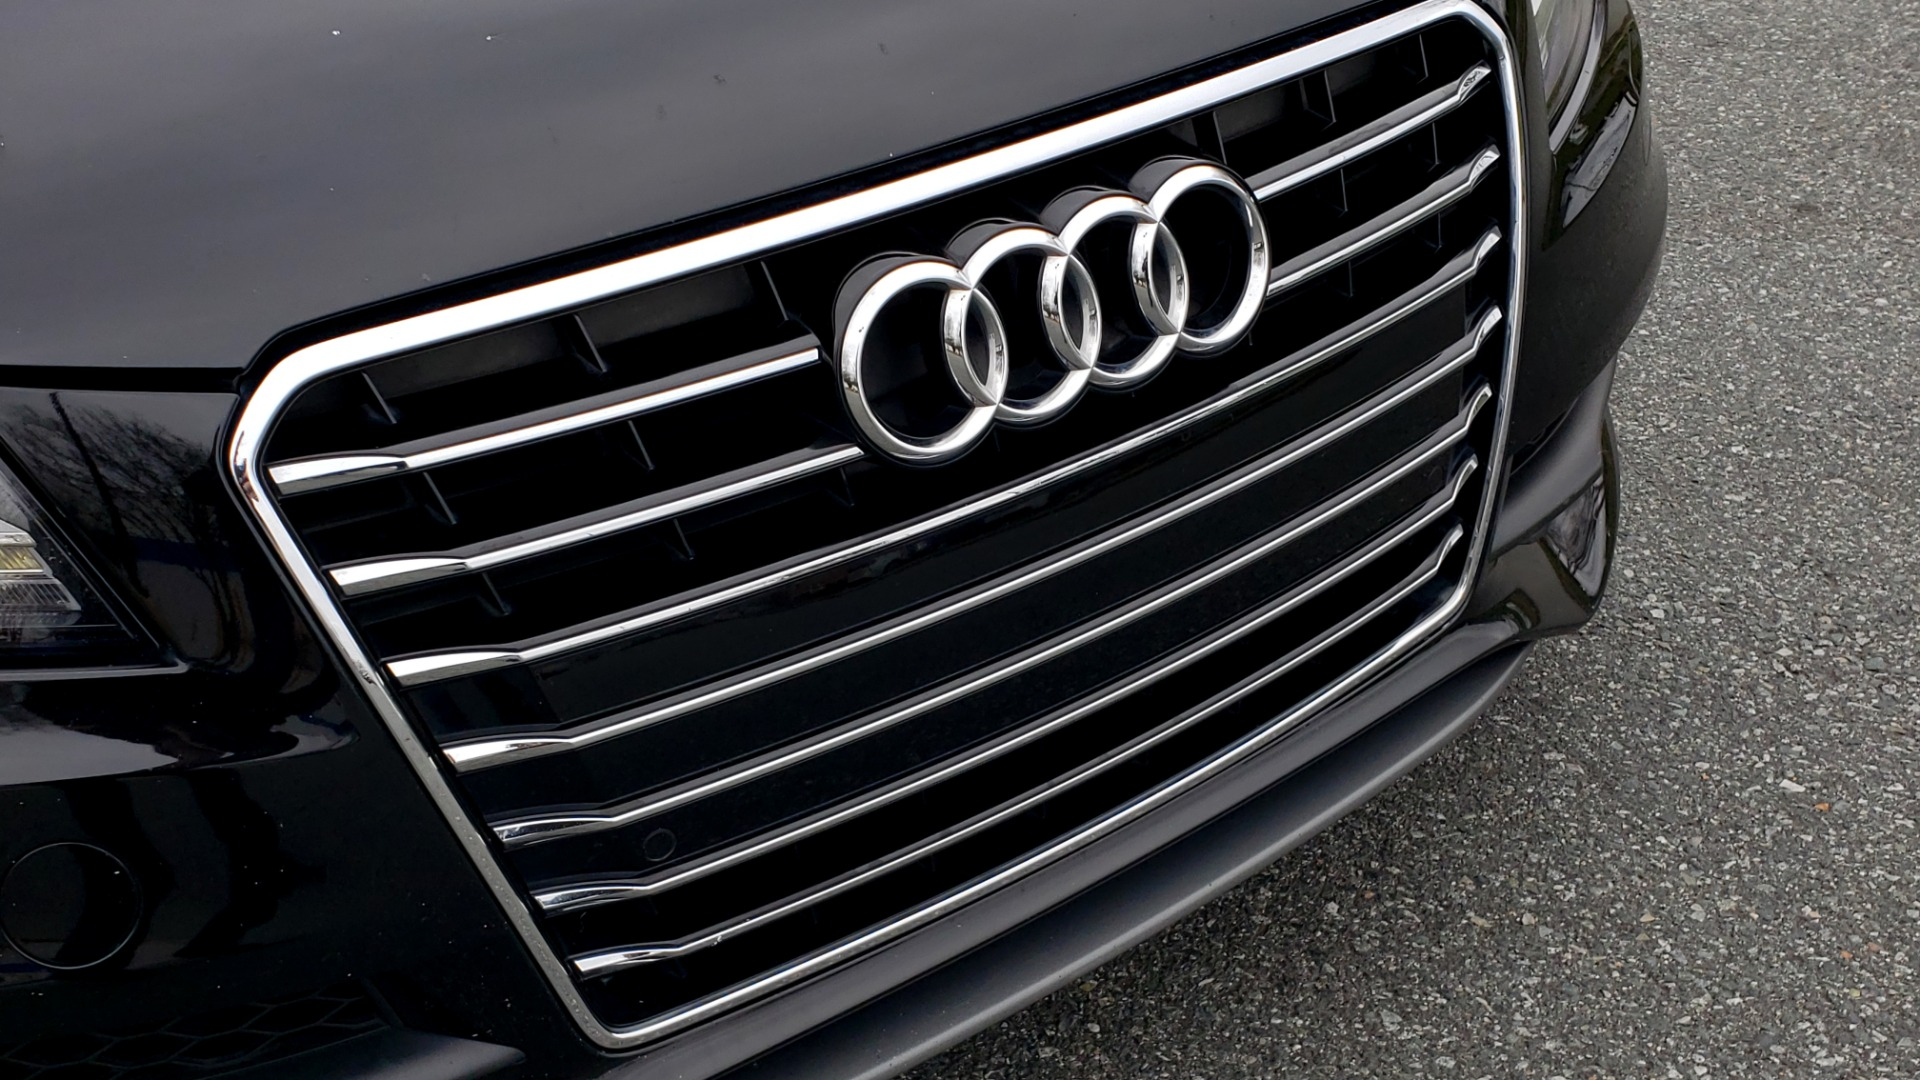 Used 2014 Audi A7 3.0 PRESTIGE / NAV / SUNROOF / BOSE / REARVIEW for sale Sold at Formula Imports in Charlotte NC 28227 28